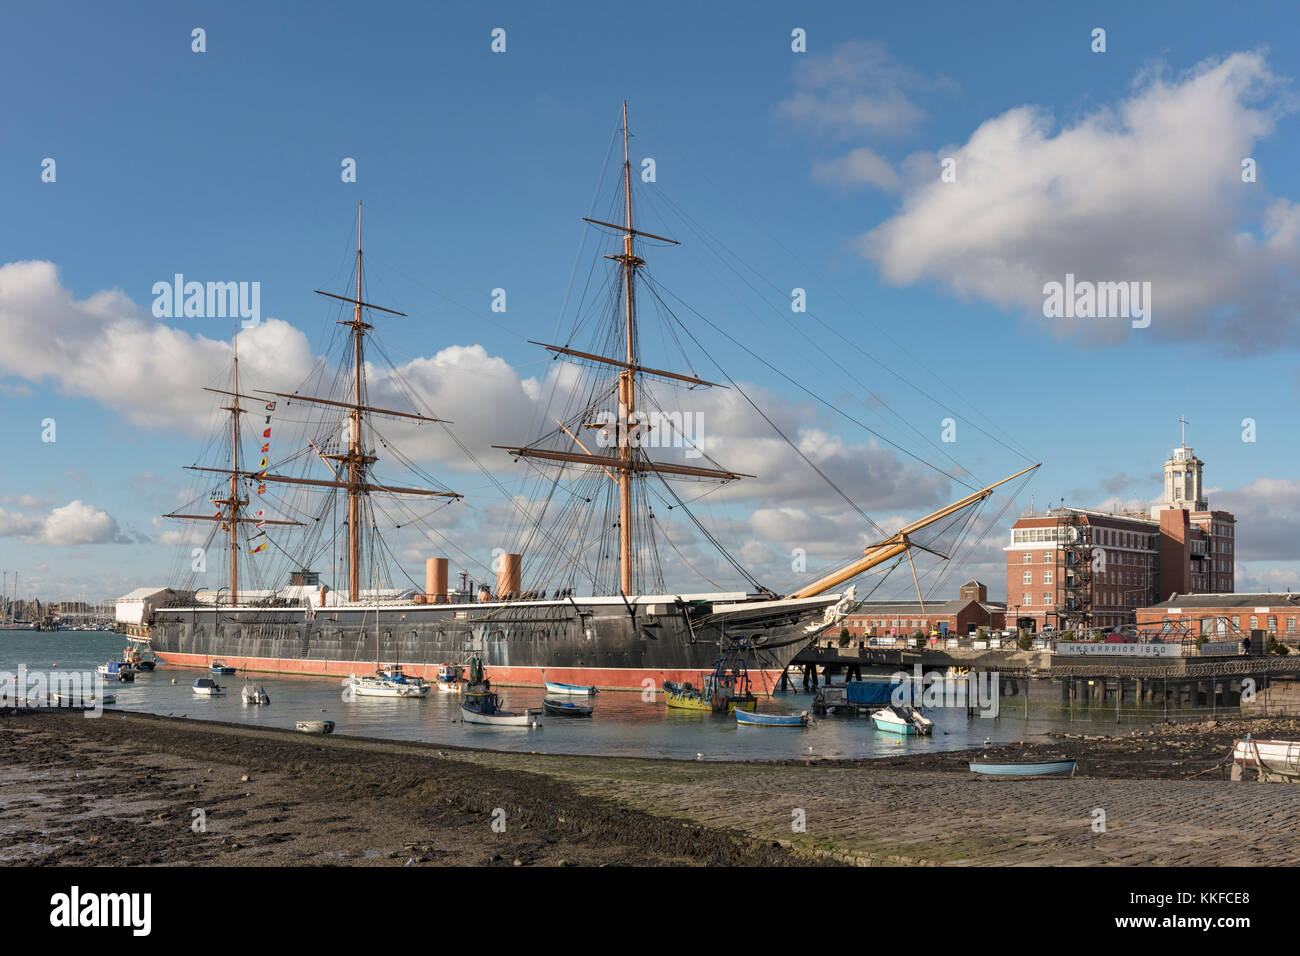 HMS Warrior 1860, first iron clad warship, designed by Issac Watts and Tomas Lloyd, , Portsmouth, Hampshire, England, Stock Photo